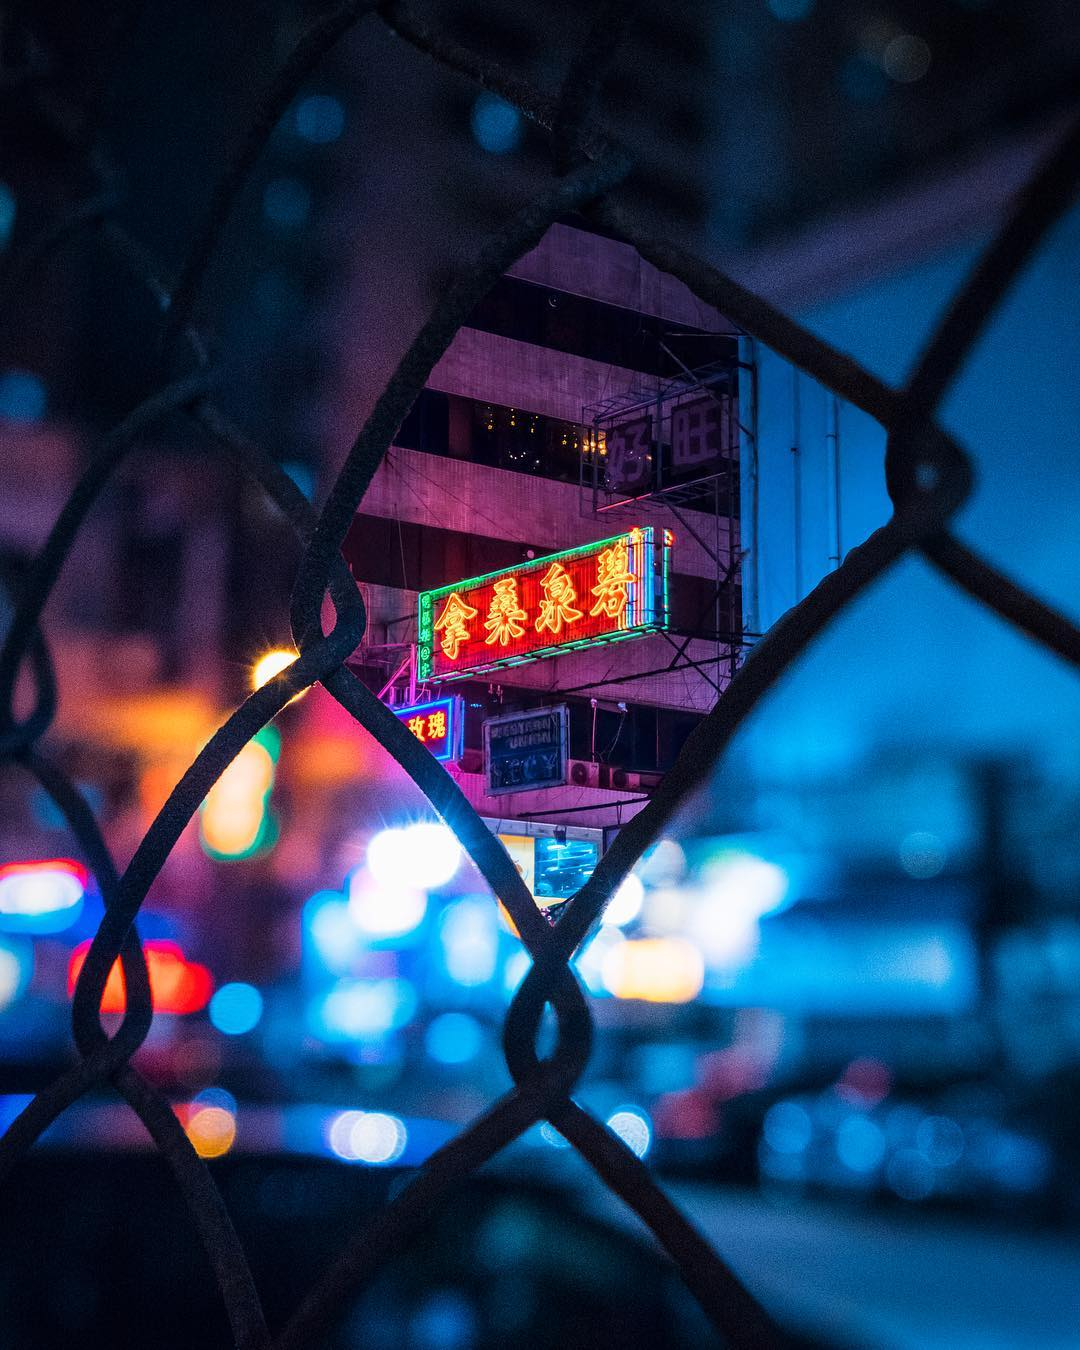 Neon Sign in Shanghai